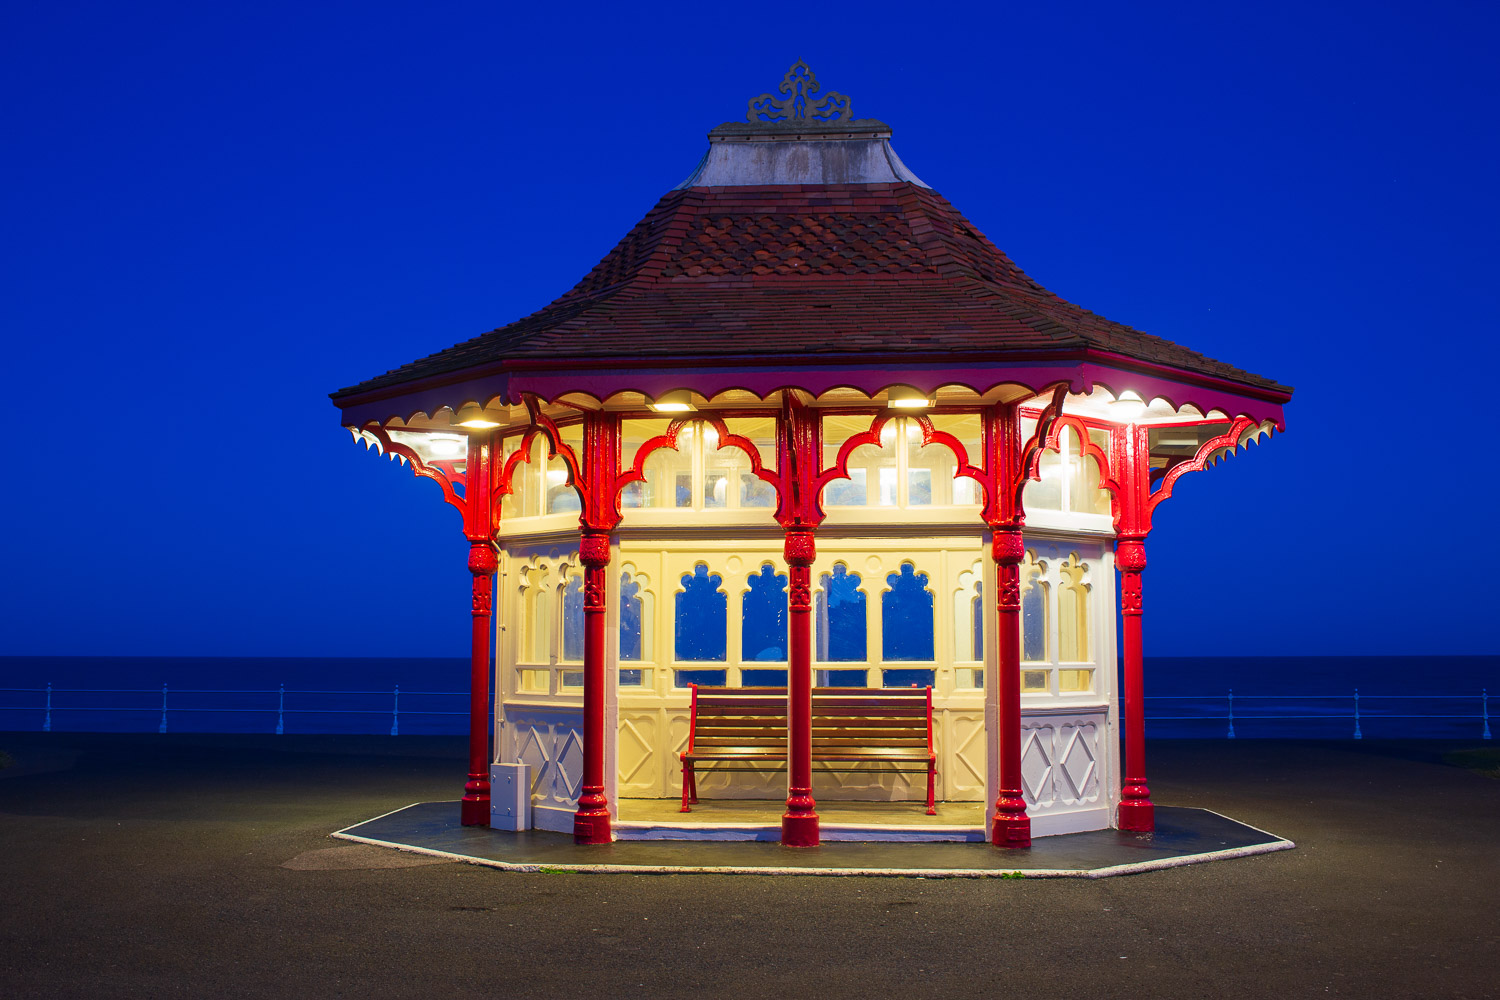 Delightfully ornate seaside shelter on the Edwardian seafront of Bexhill-